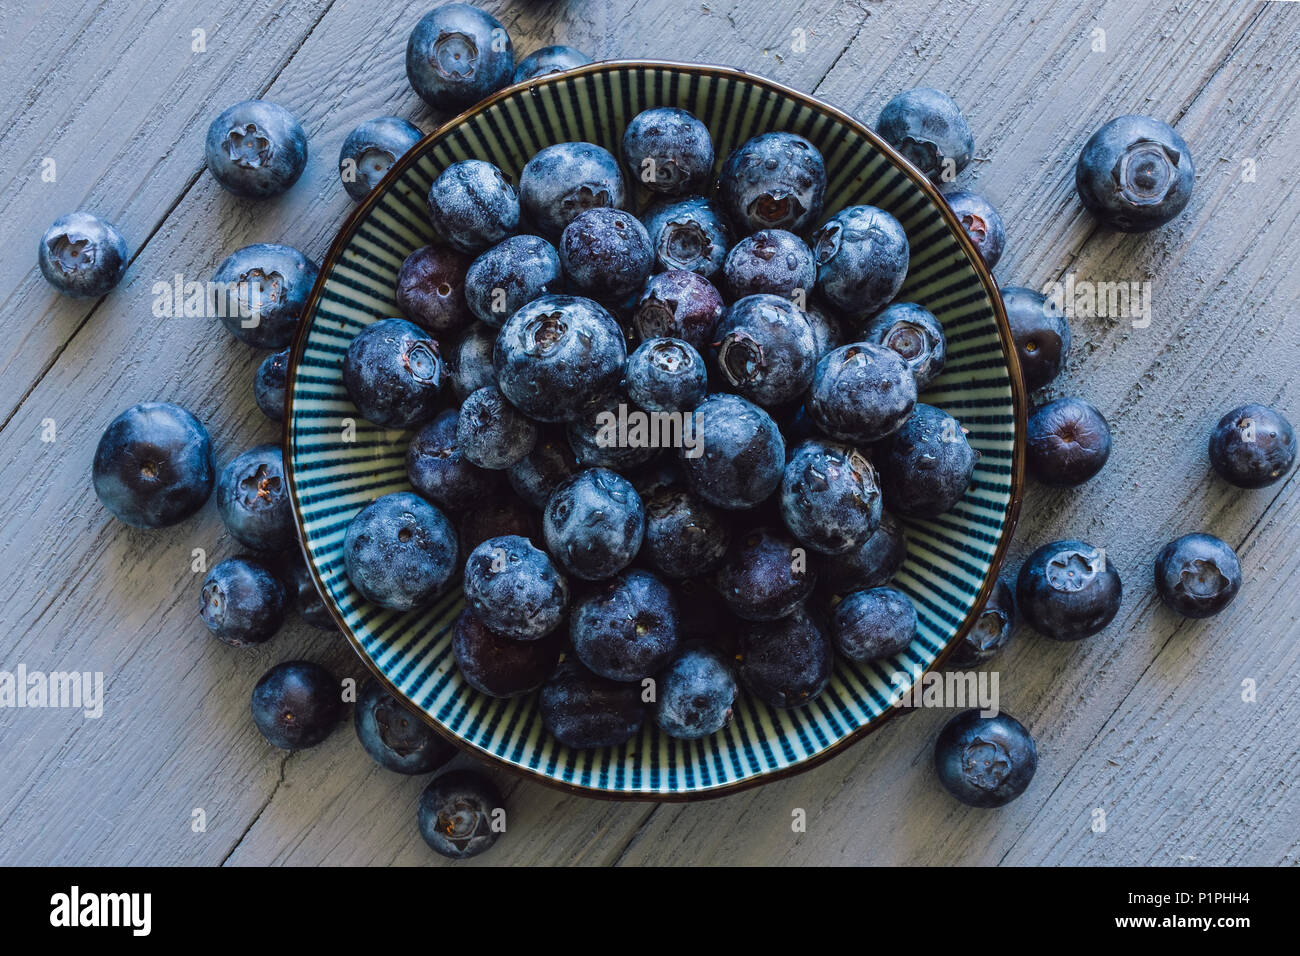 Centered Bowl of Blueberries with Scattered Berries on Blue Table - Stock Image